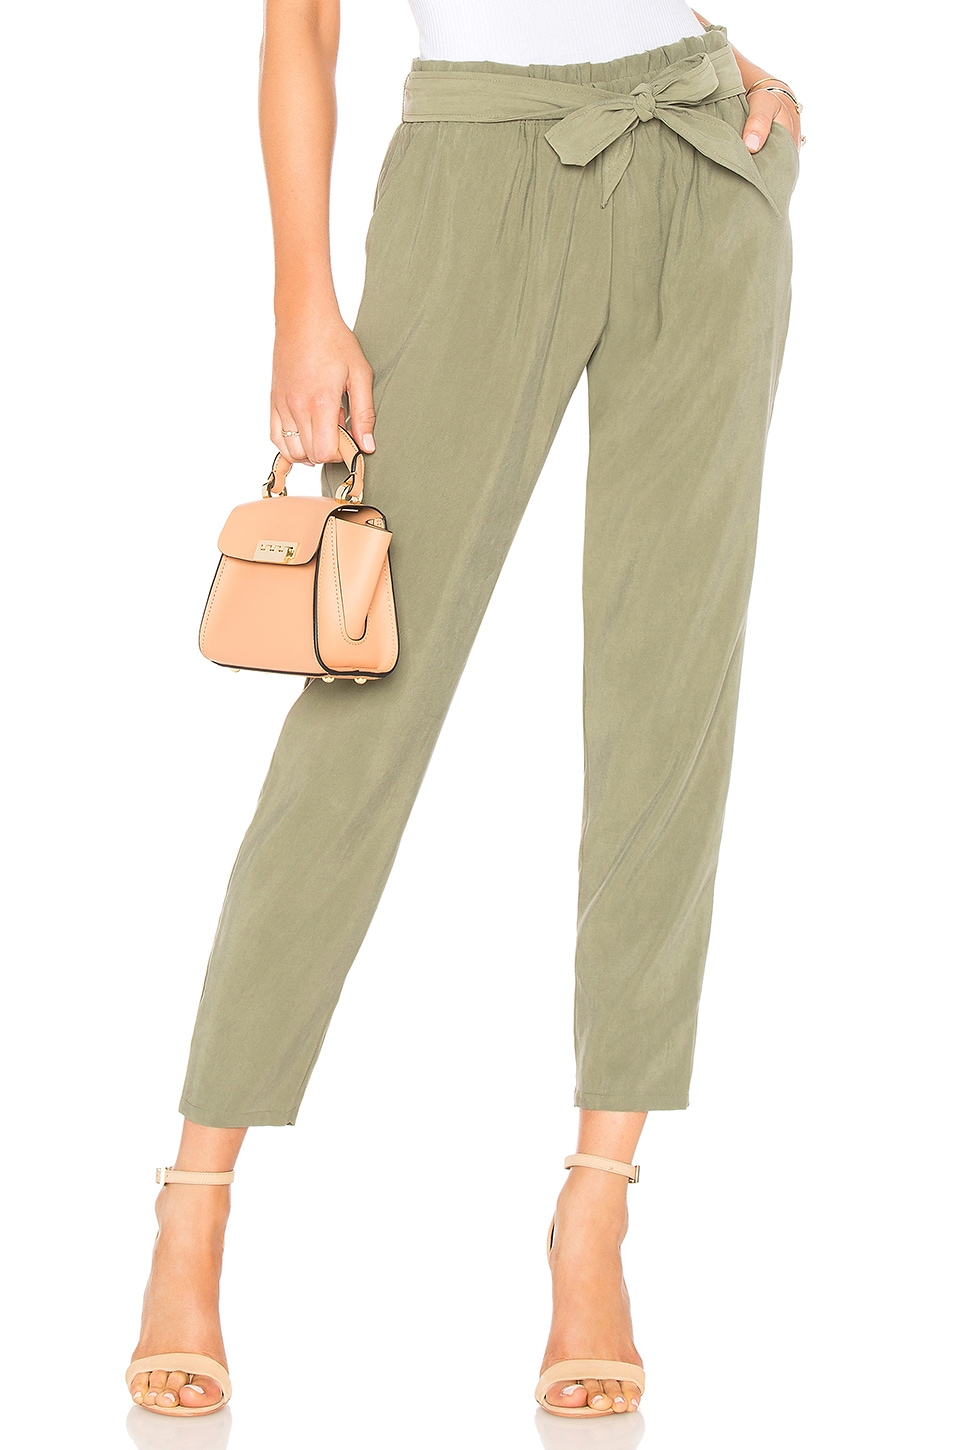 Self Tie Pant In Dusty Olive